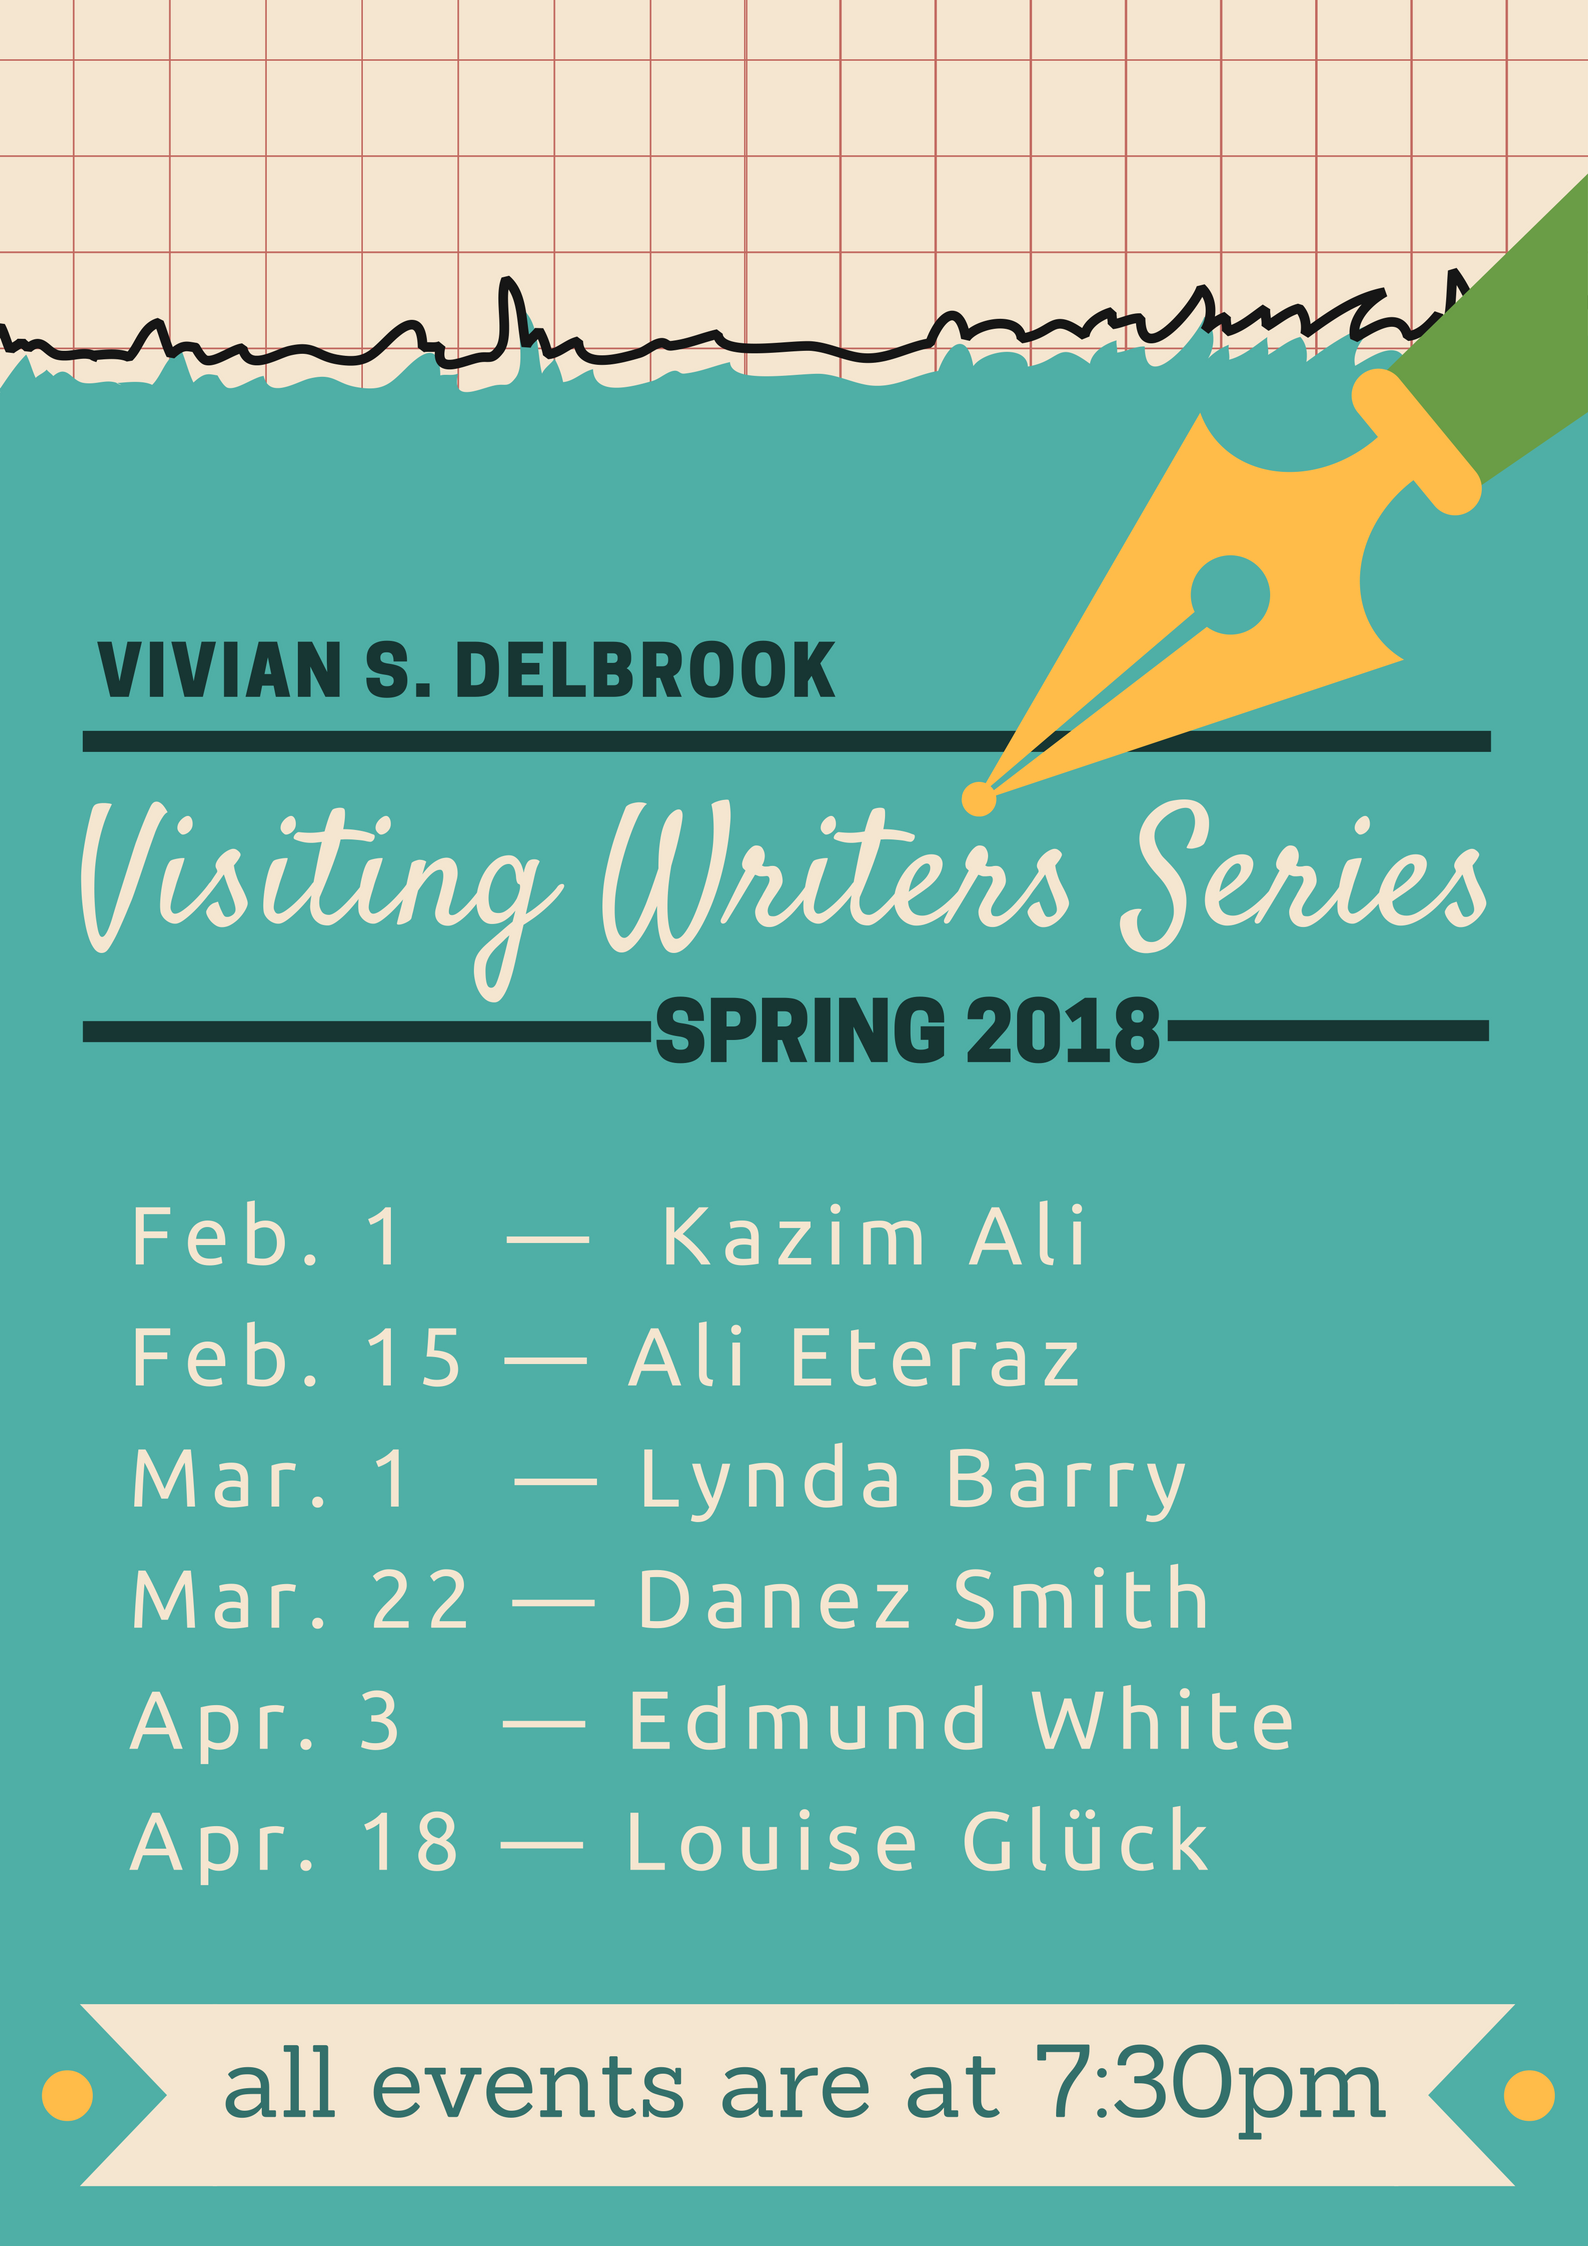 Spring 2018 Visiting Writers Series. Feb 1, Kazim Ali. Feb 15, Ali Eteraz. Mar 1, Lynda Barry. Mar 22, Danez Smith. Apr 3, Edmund White. Apr 18 Louise Gluck